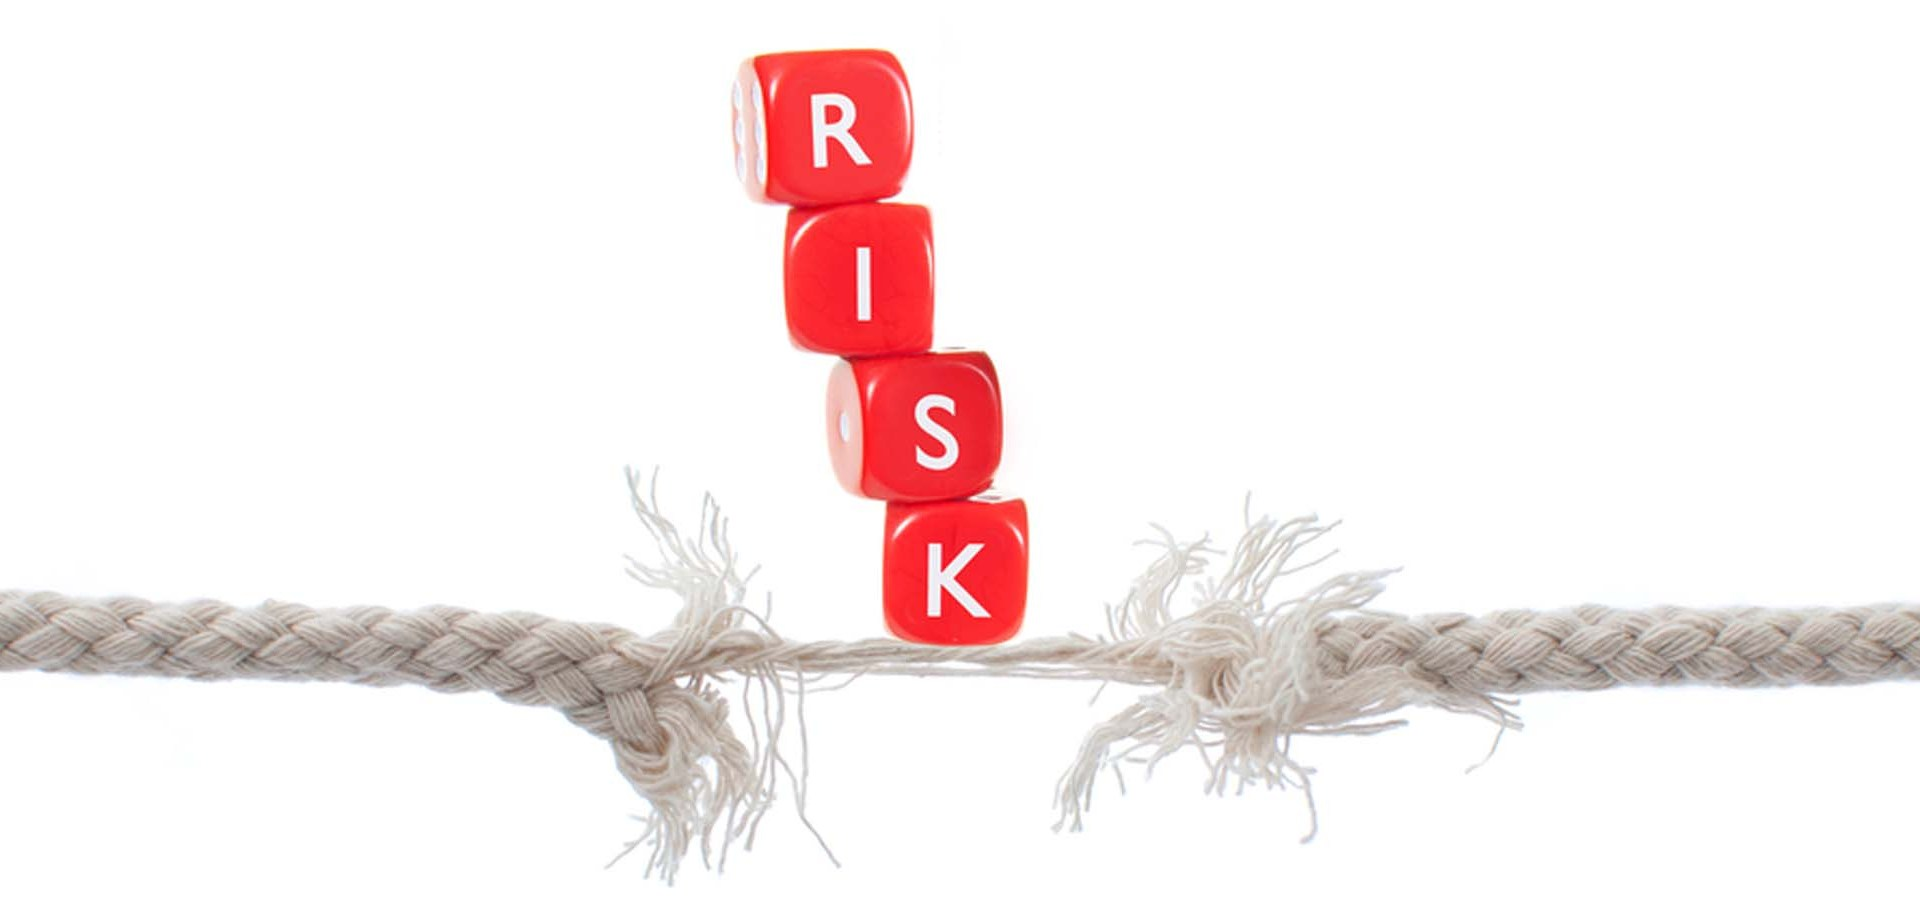 Have You Assessed the Strategic Startup Risk for Your Business?